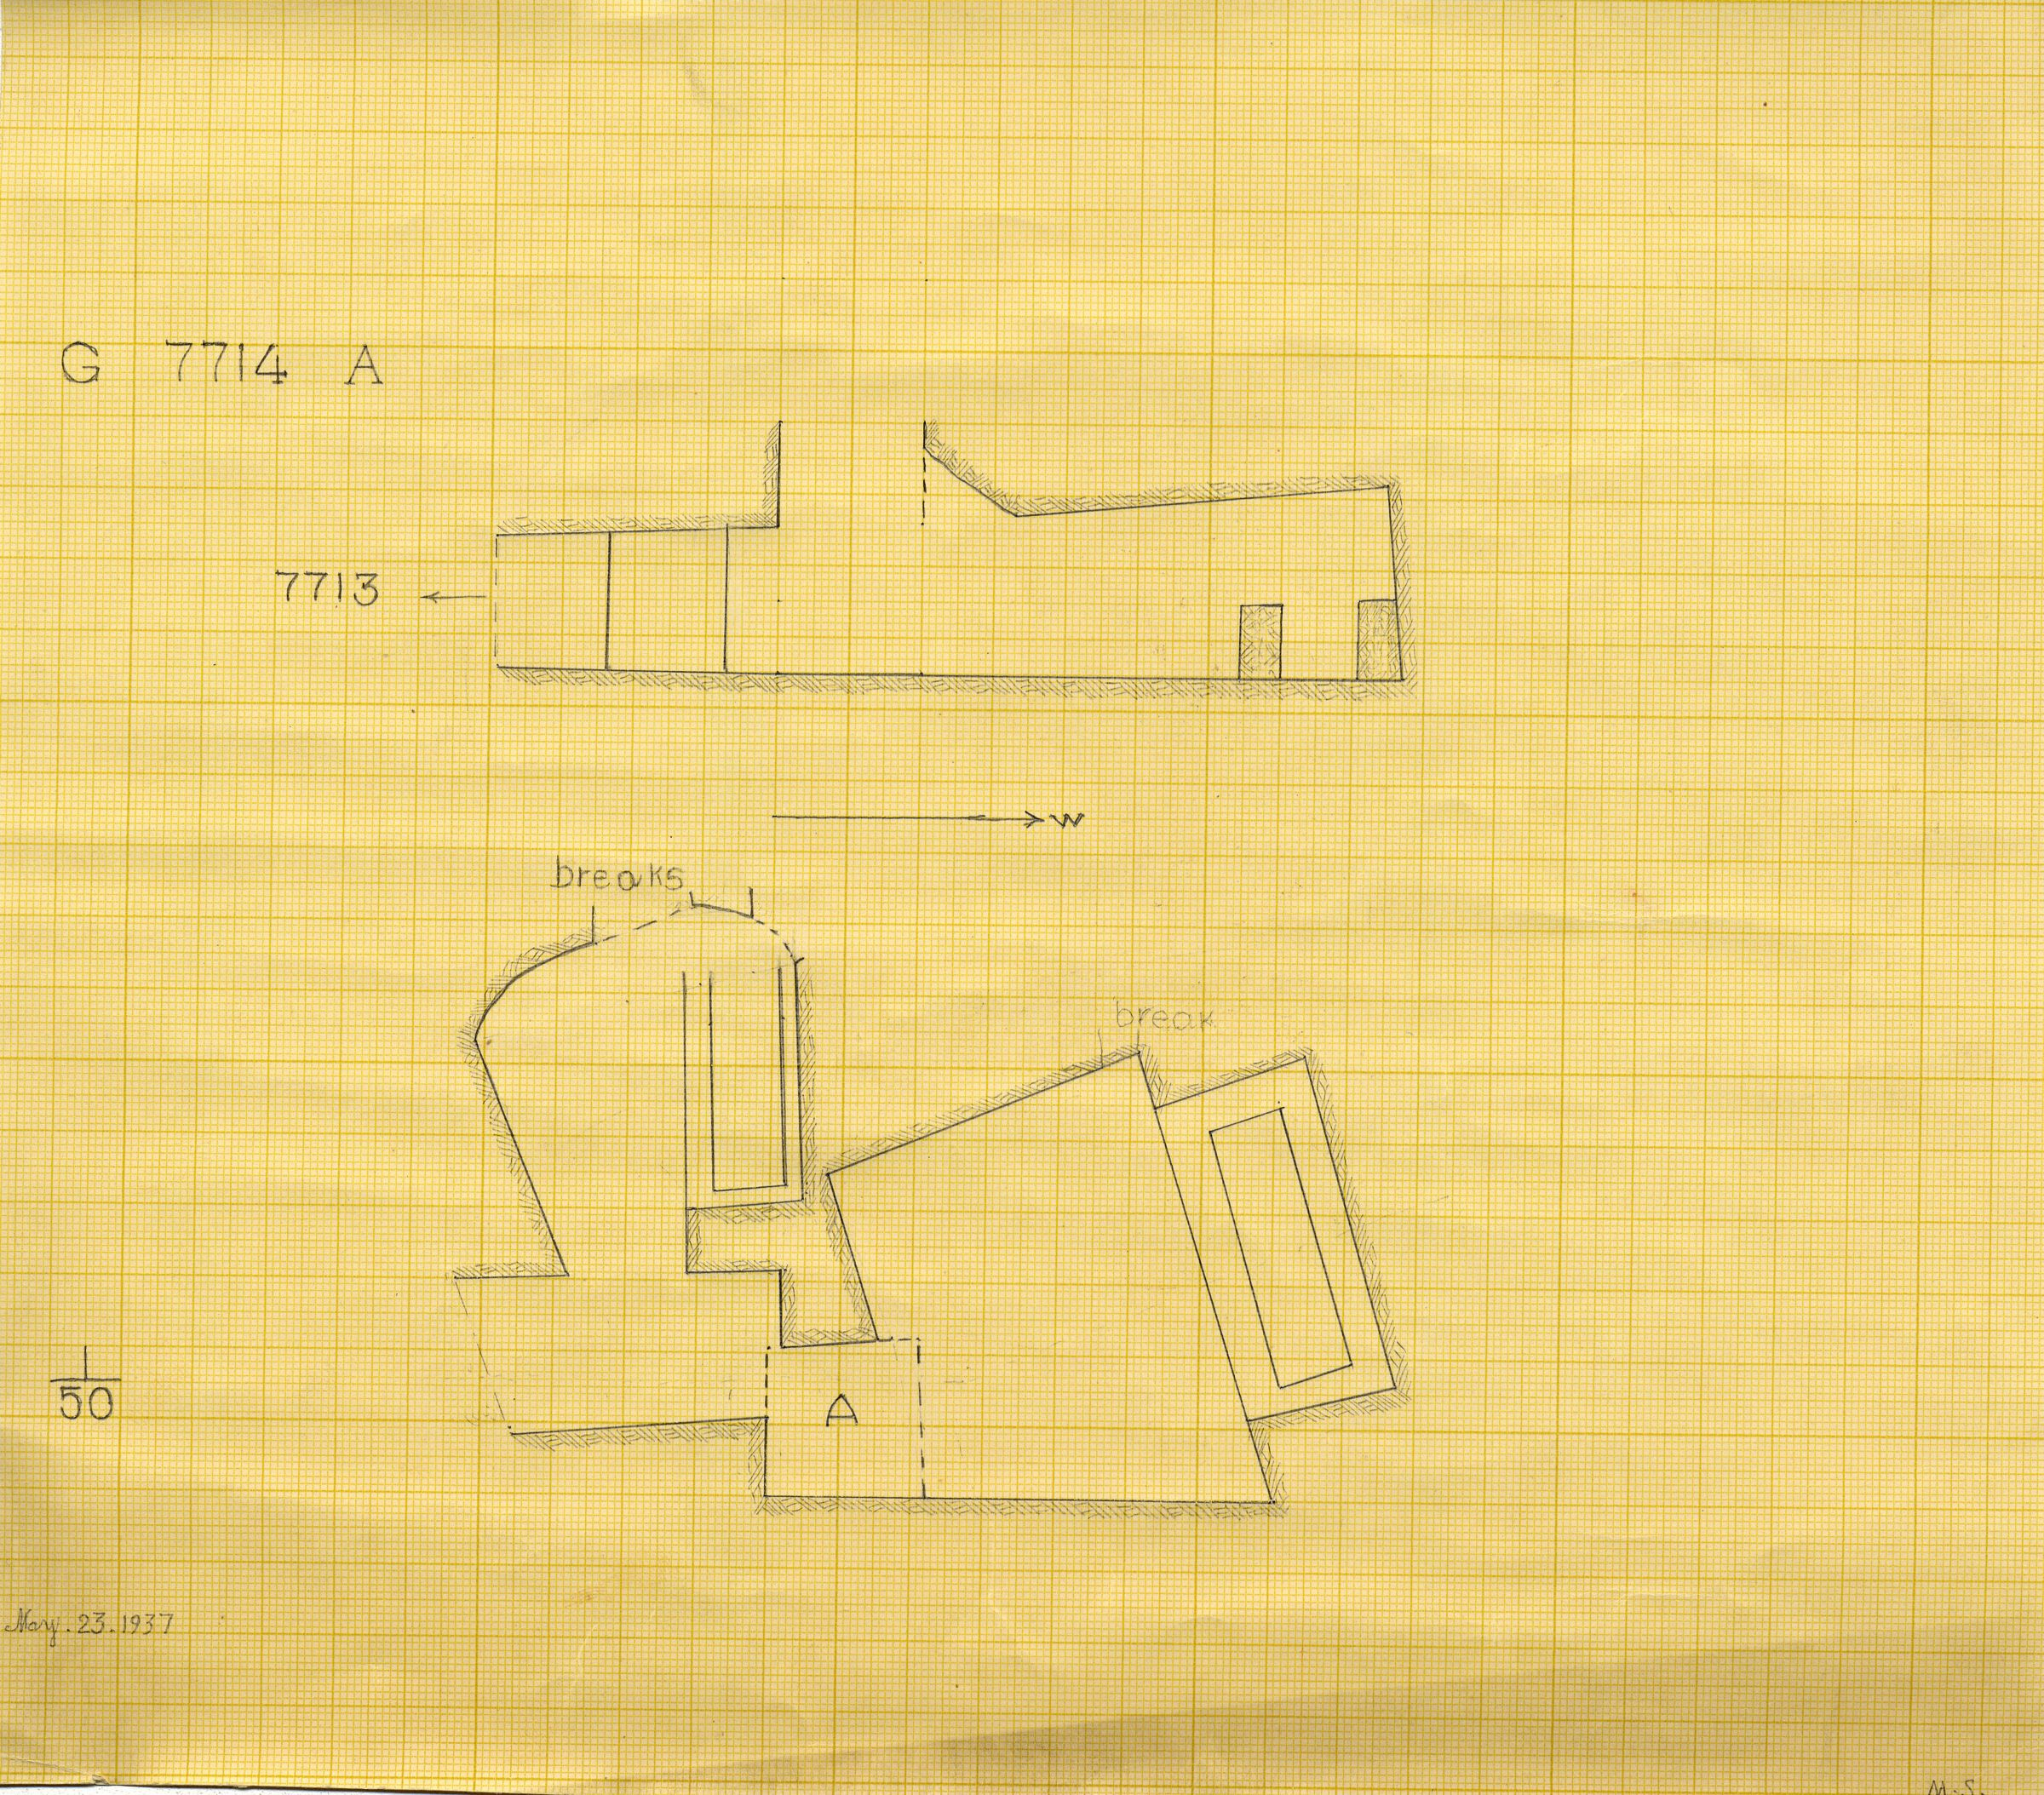 Maps and plans: G 7714, Shaft A